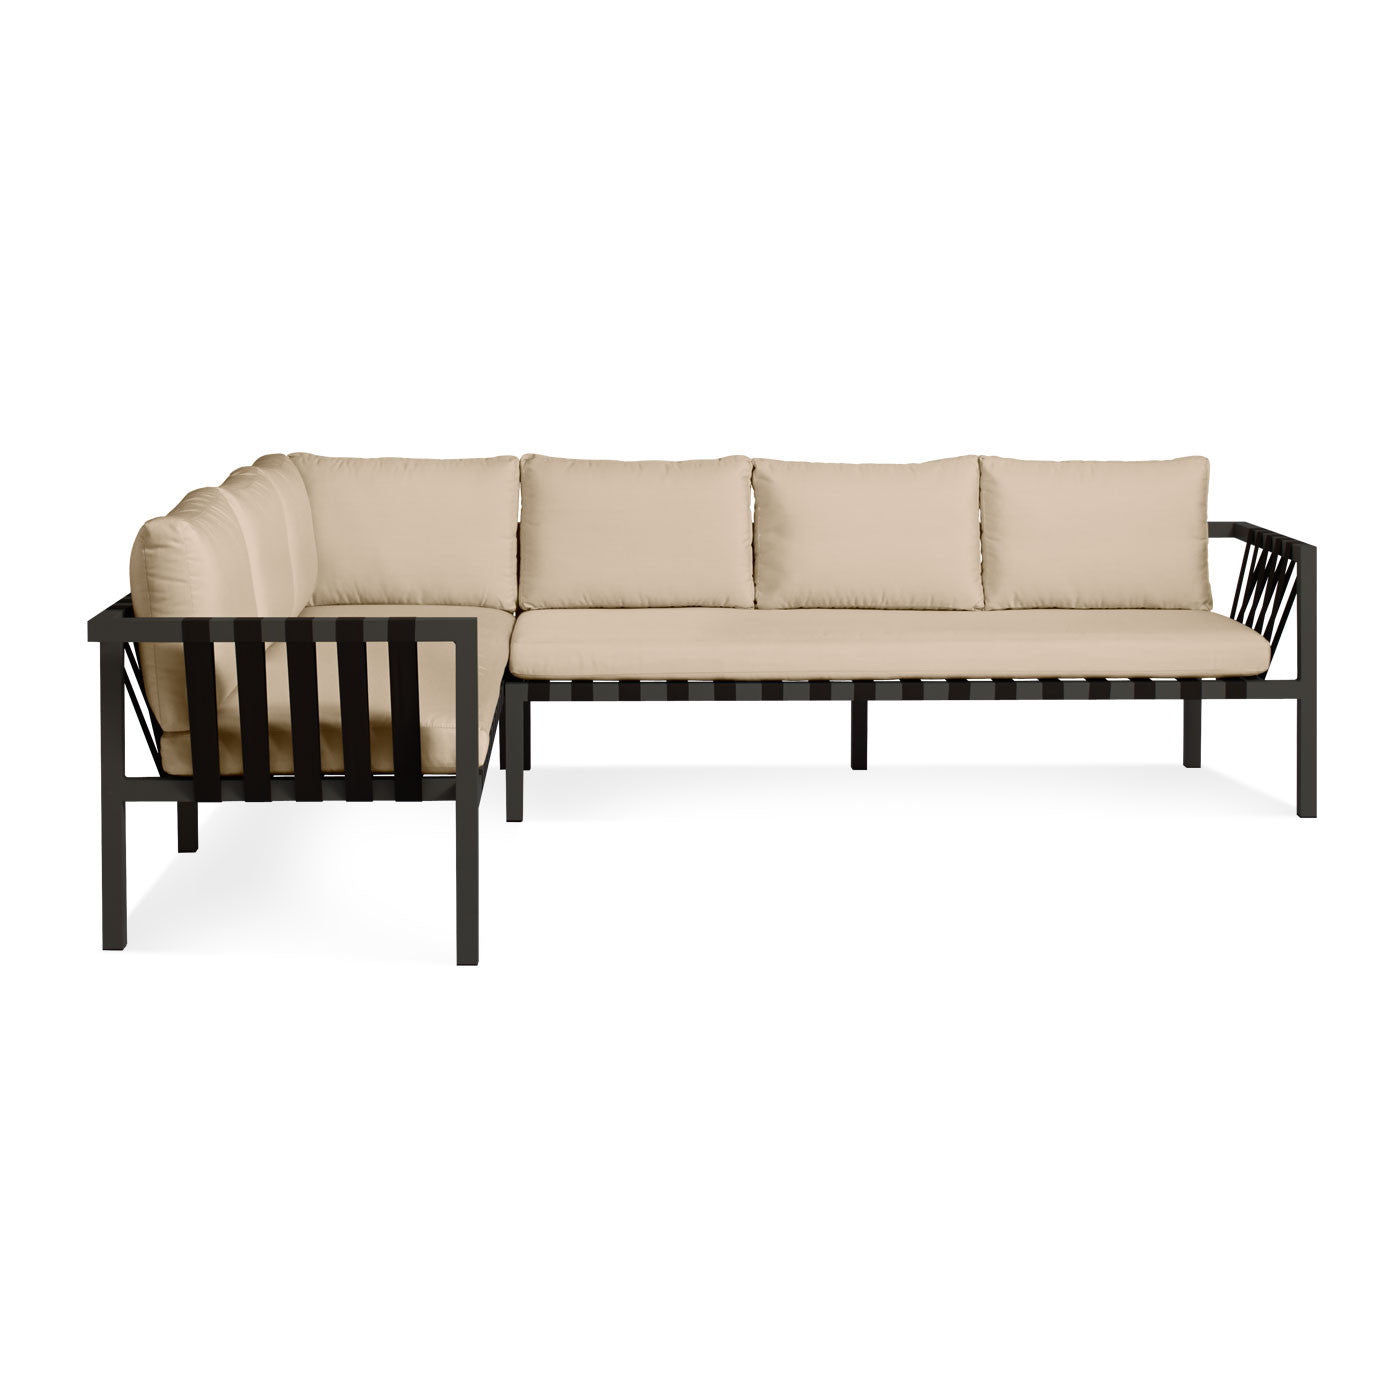 Jibe XL Sectional Sofa